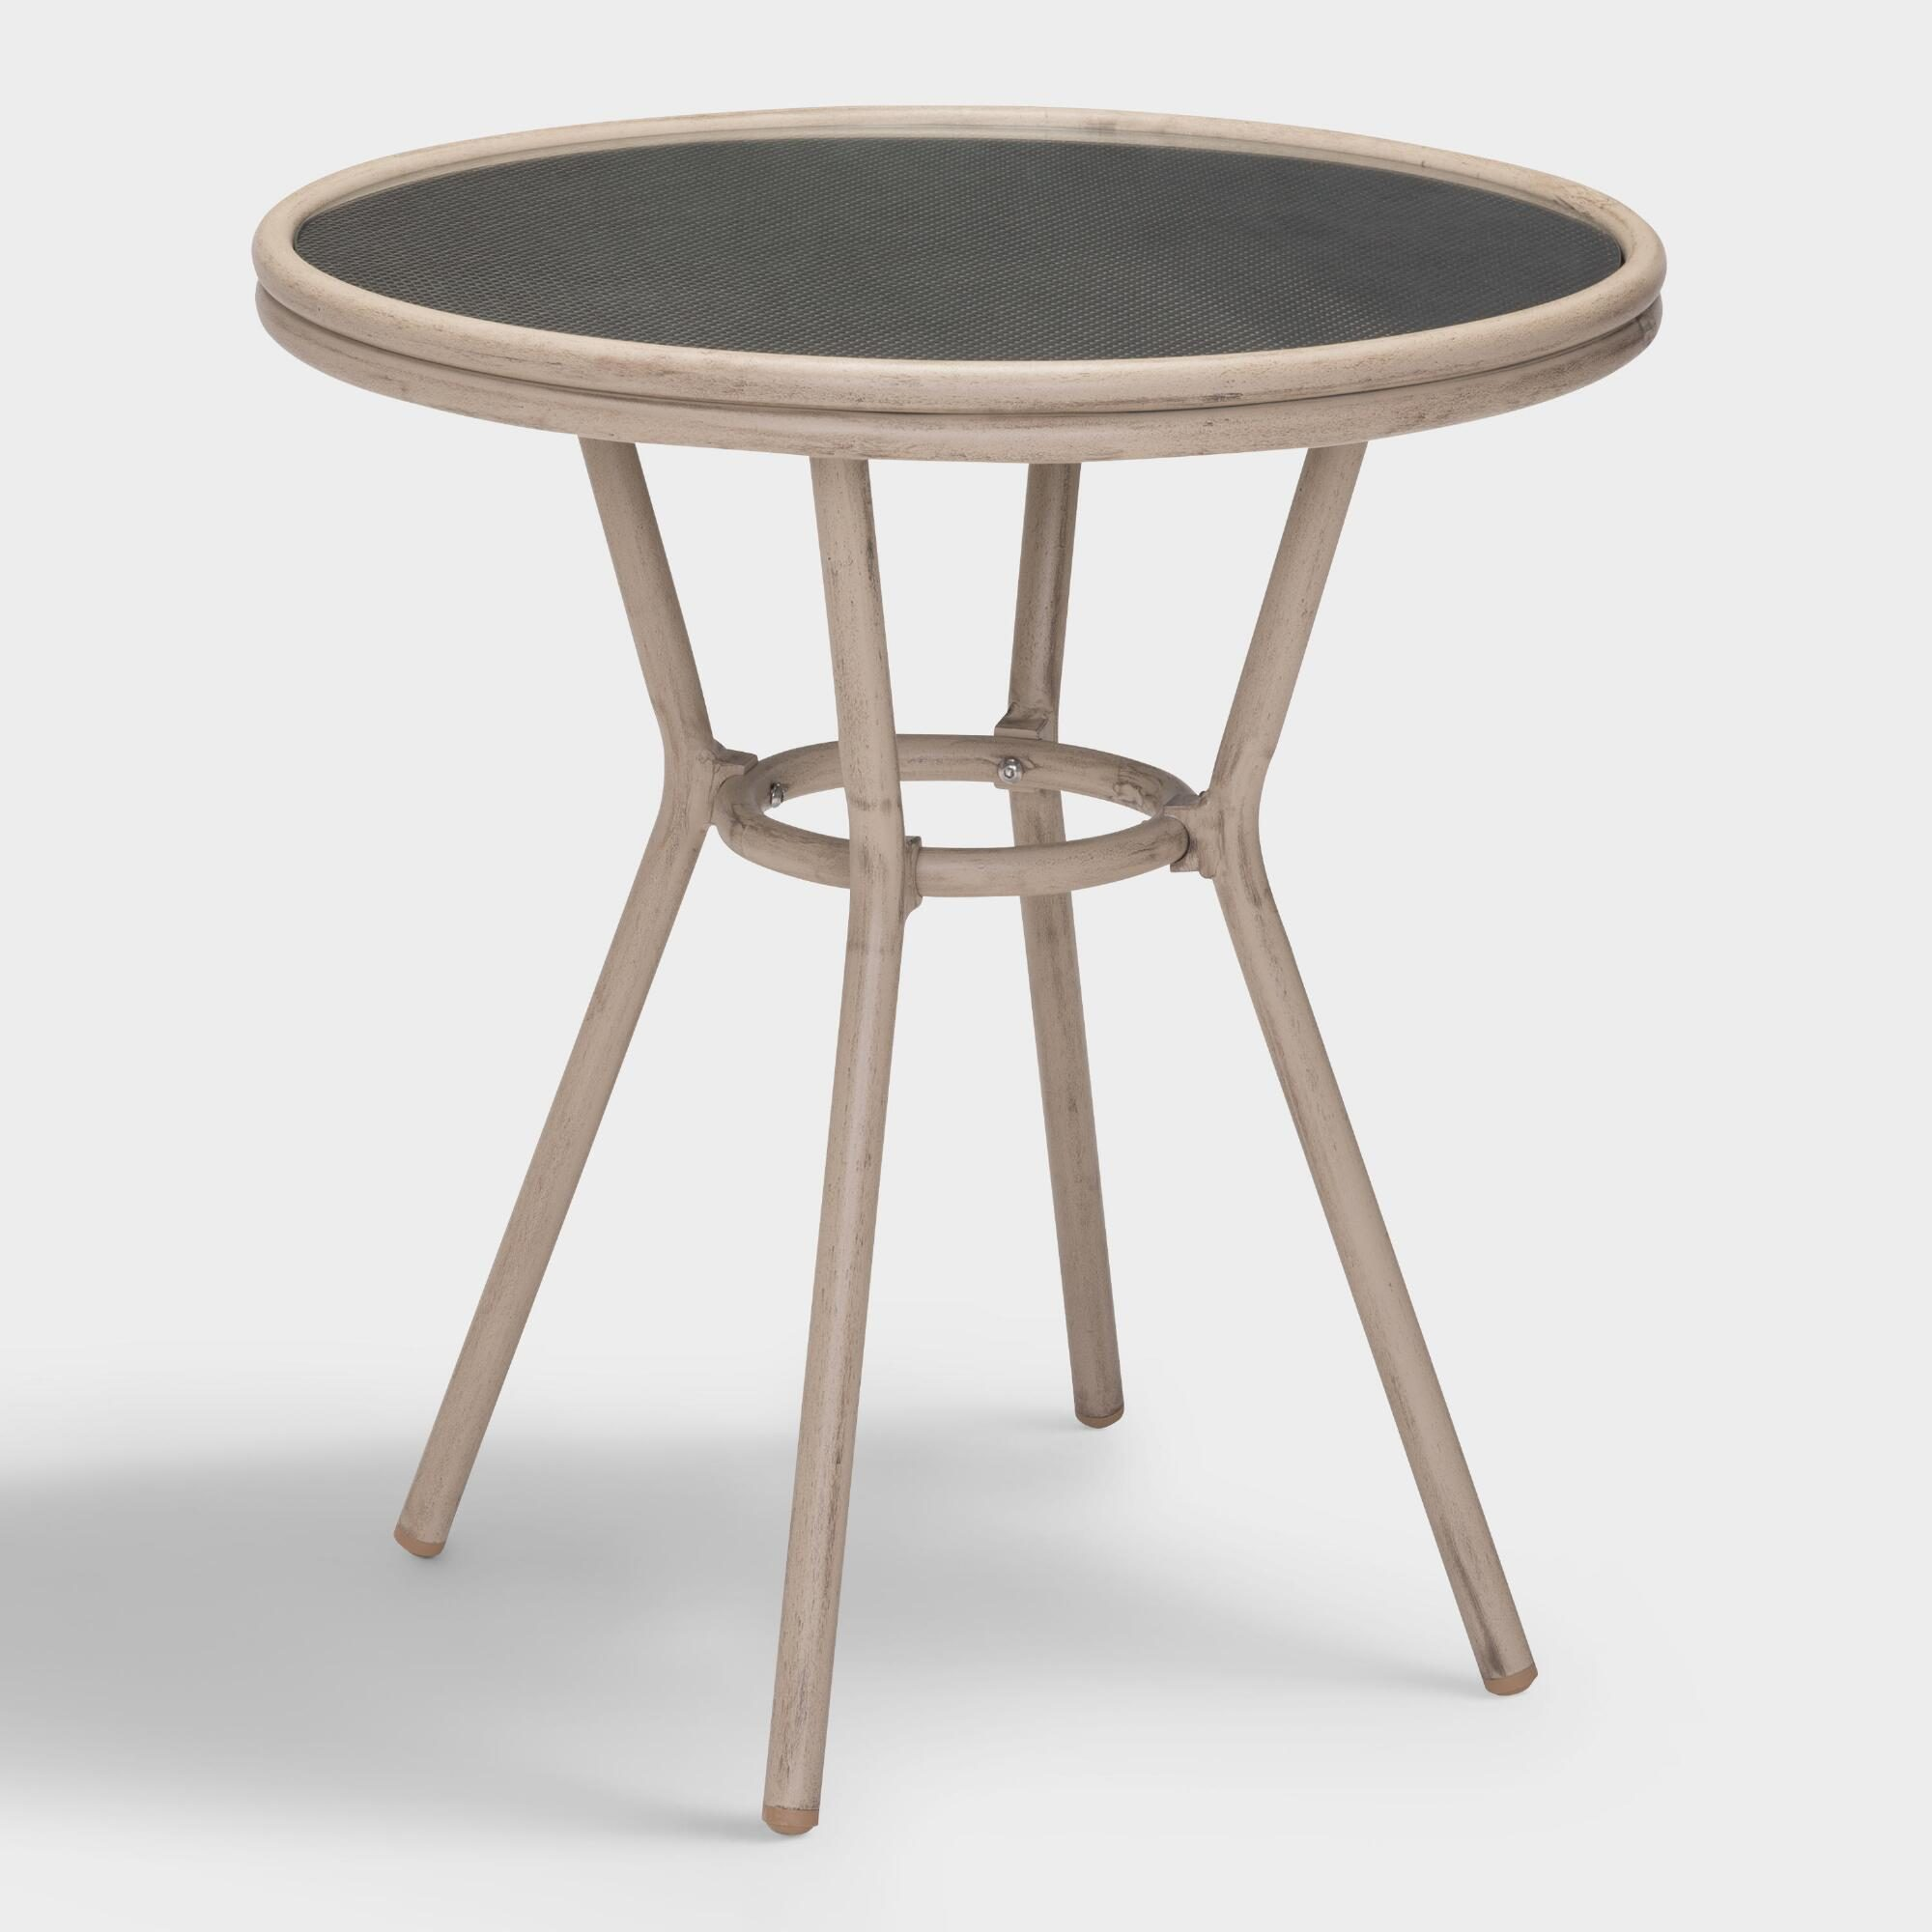 All Weather Wicker Elie Outdoor Patio Bistro Table: Brown - Resin by World Market